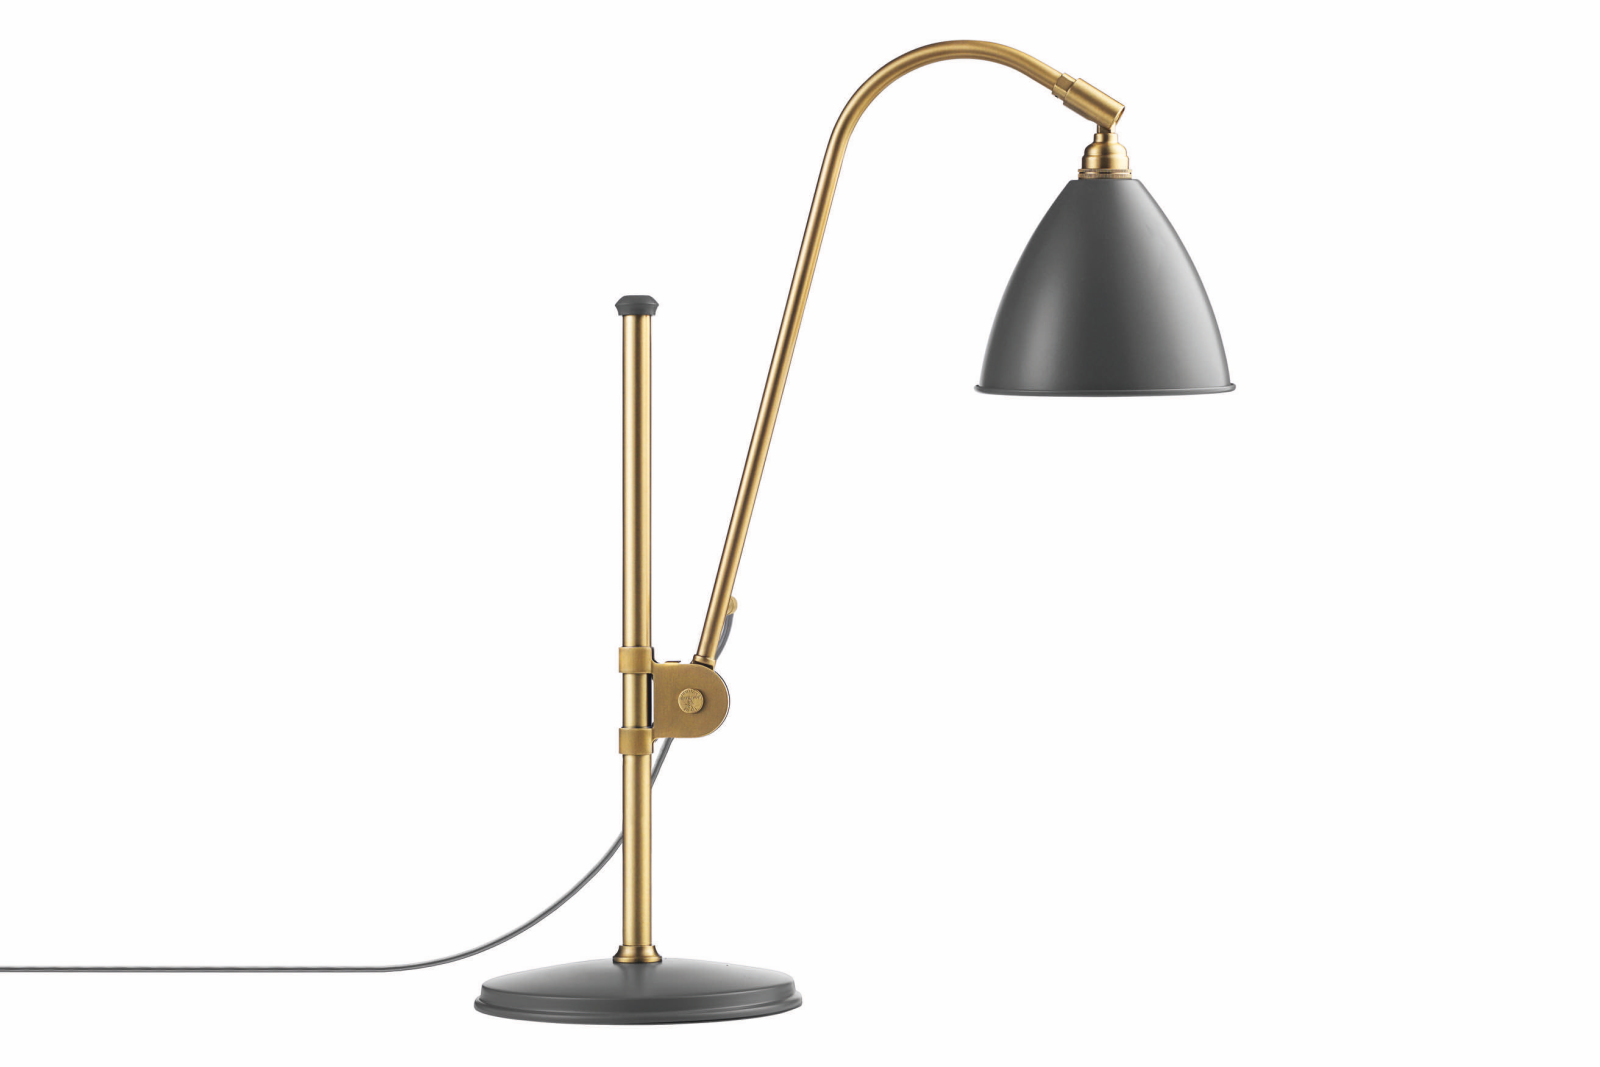 Bestlite BL1 Table Lamp Grey and Brass